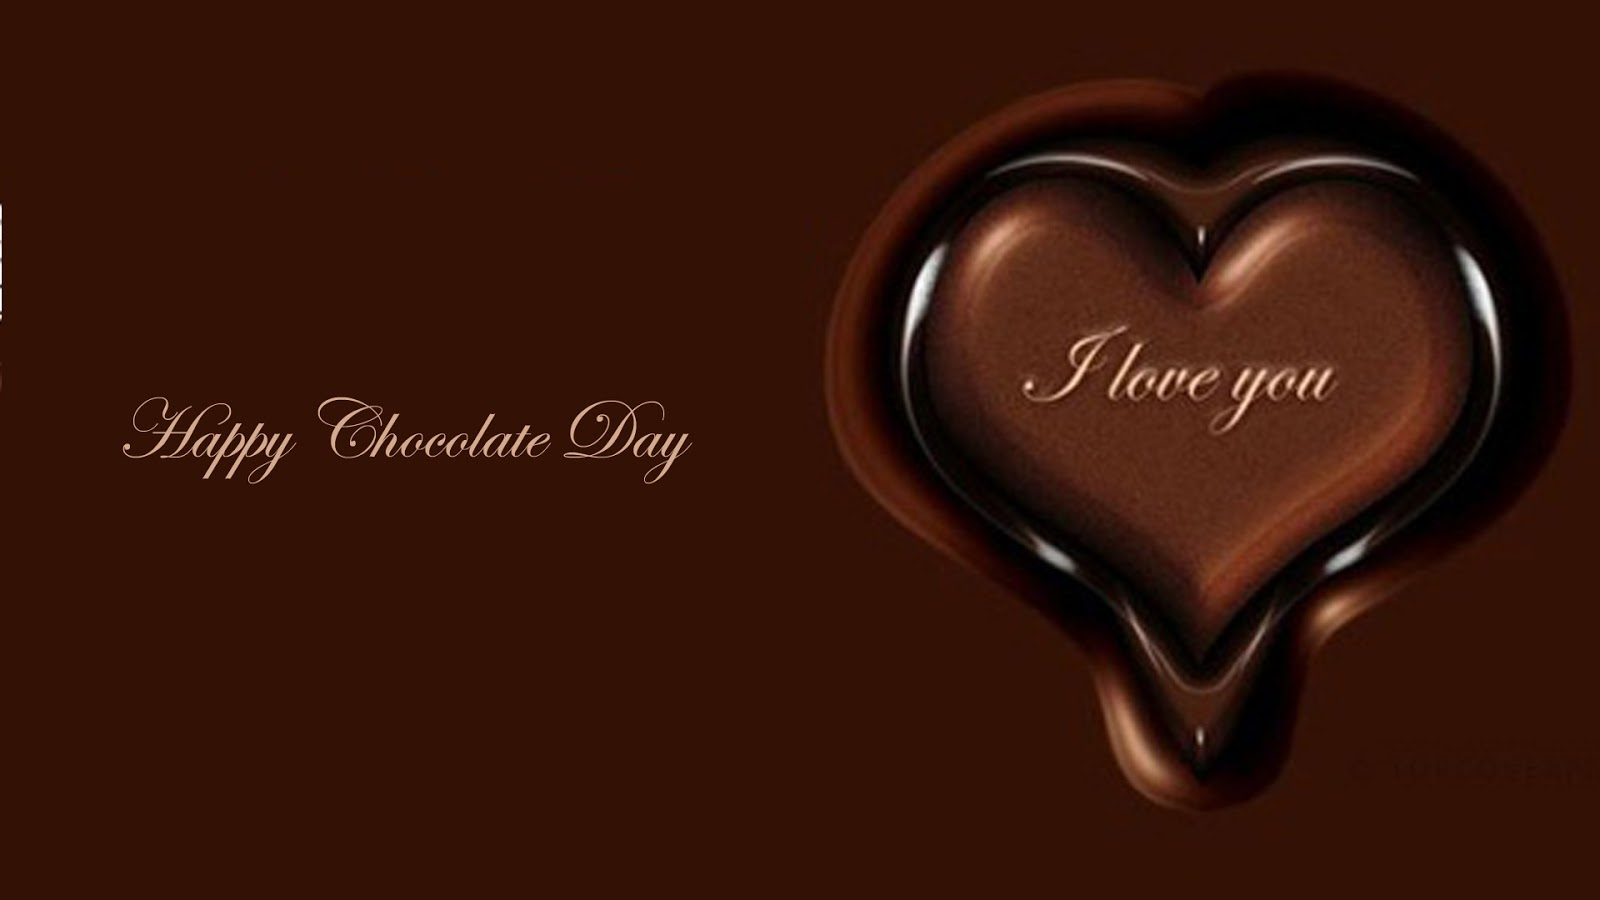 Happy Chocolate Day 2017 Images, Pictures, HD Wallpapers Pics Free ...